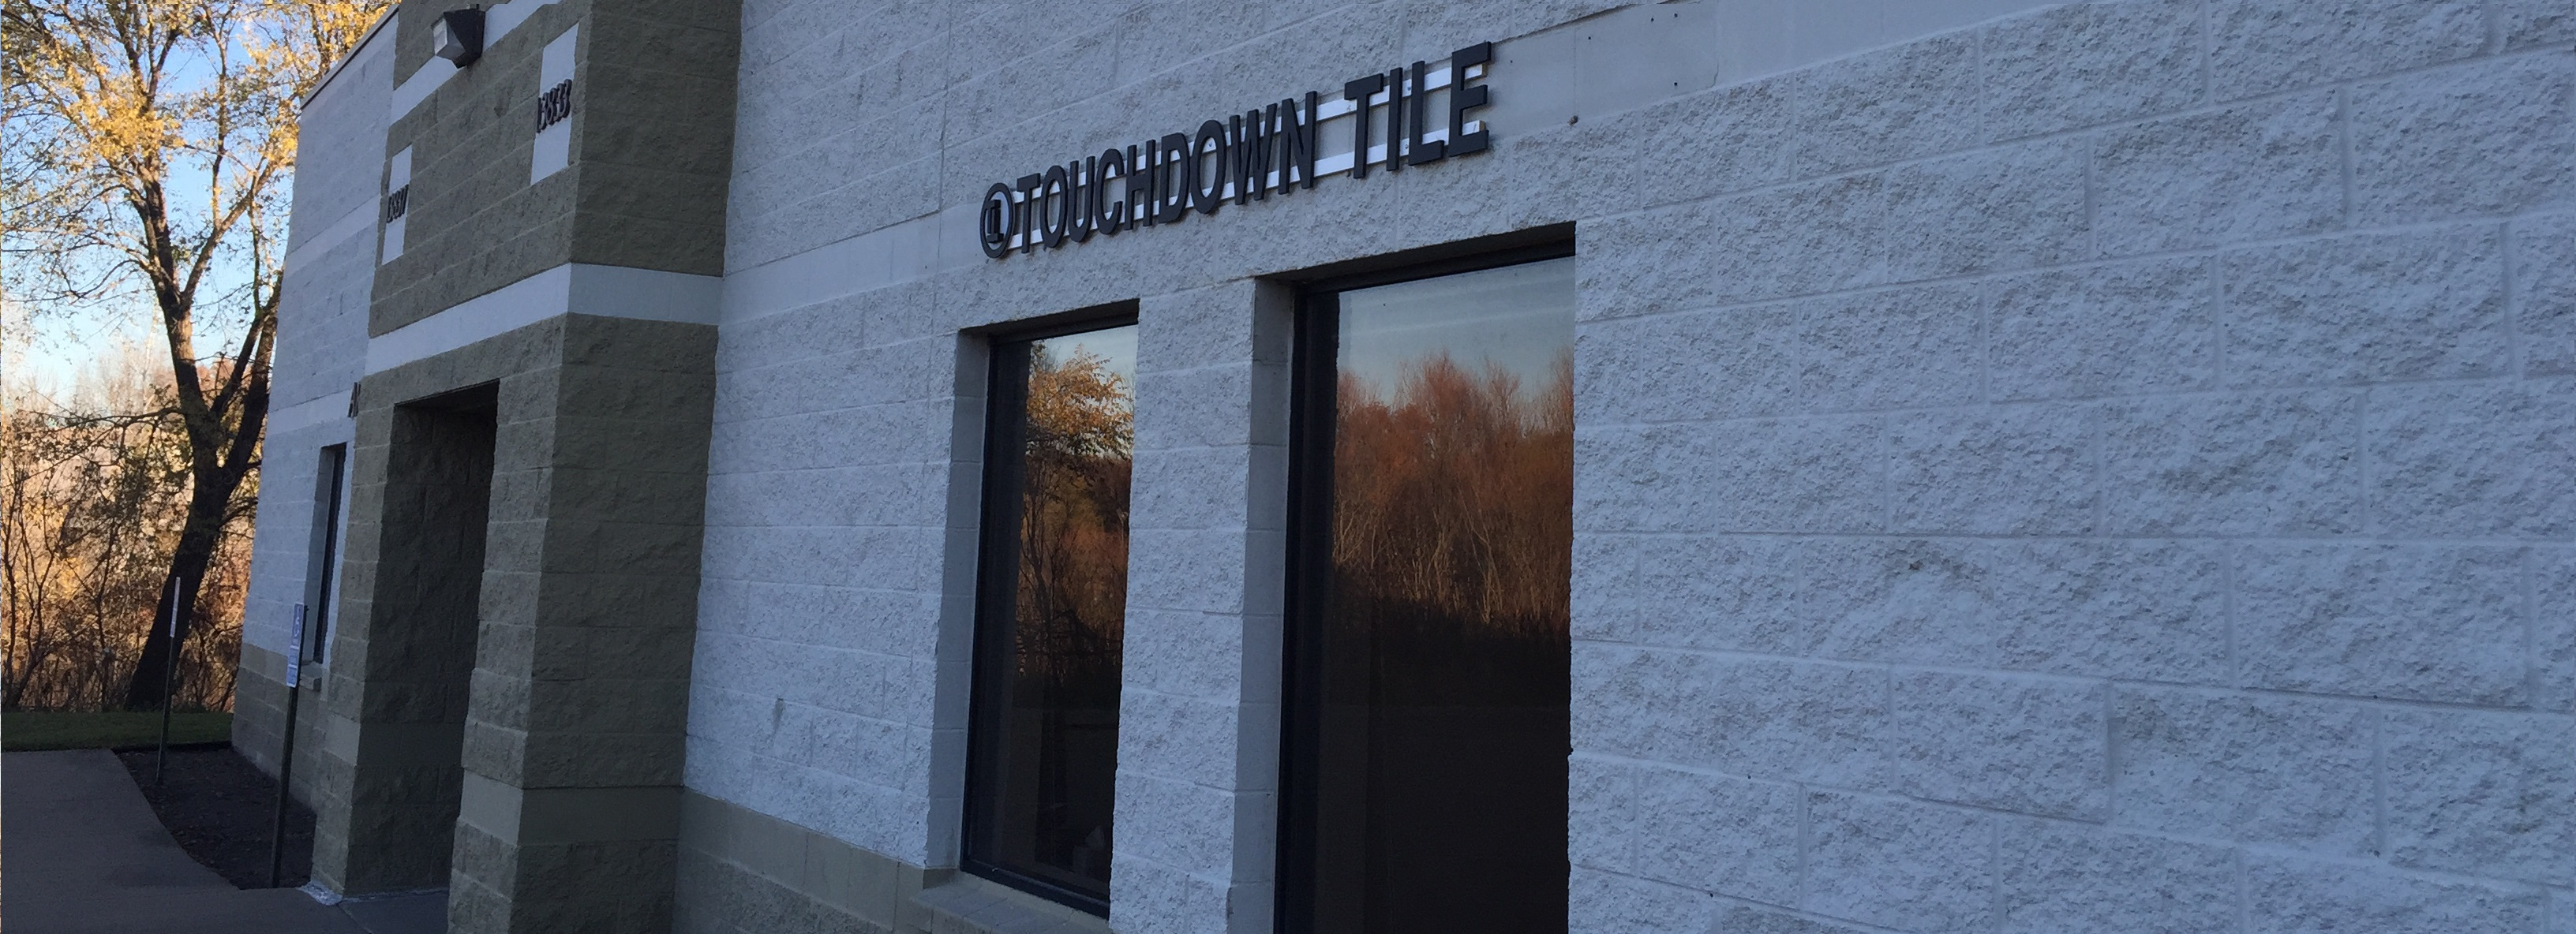 About us Minnesota tile installers | TOUCHDOWN TILE